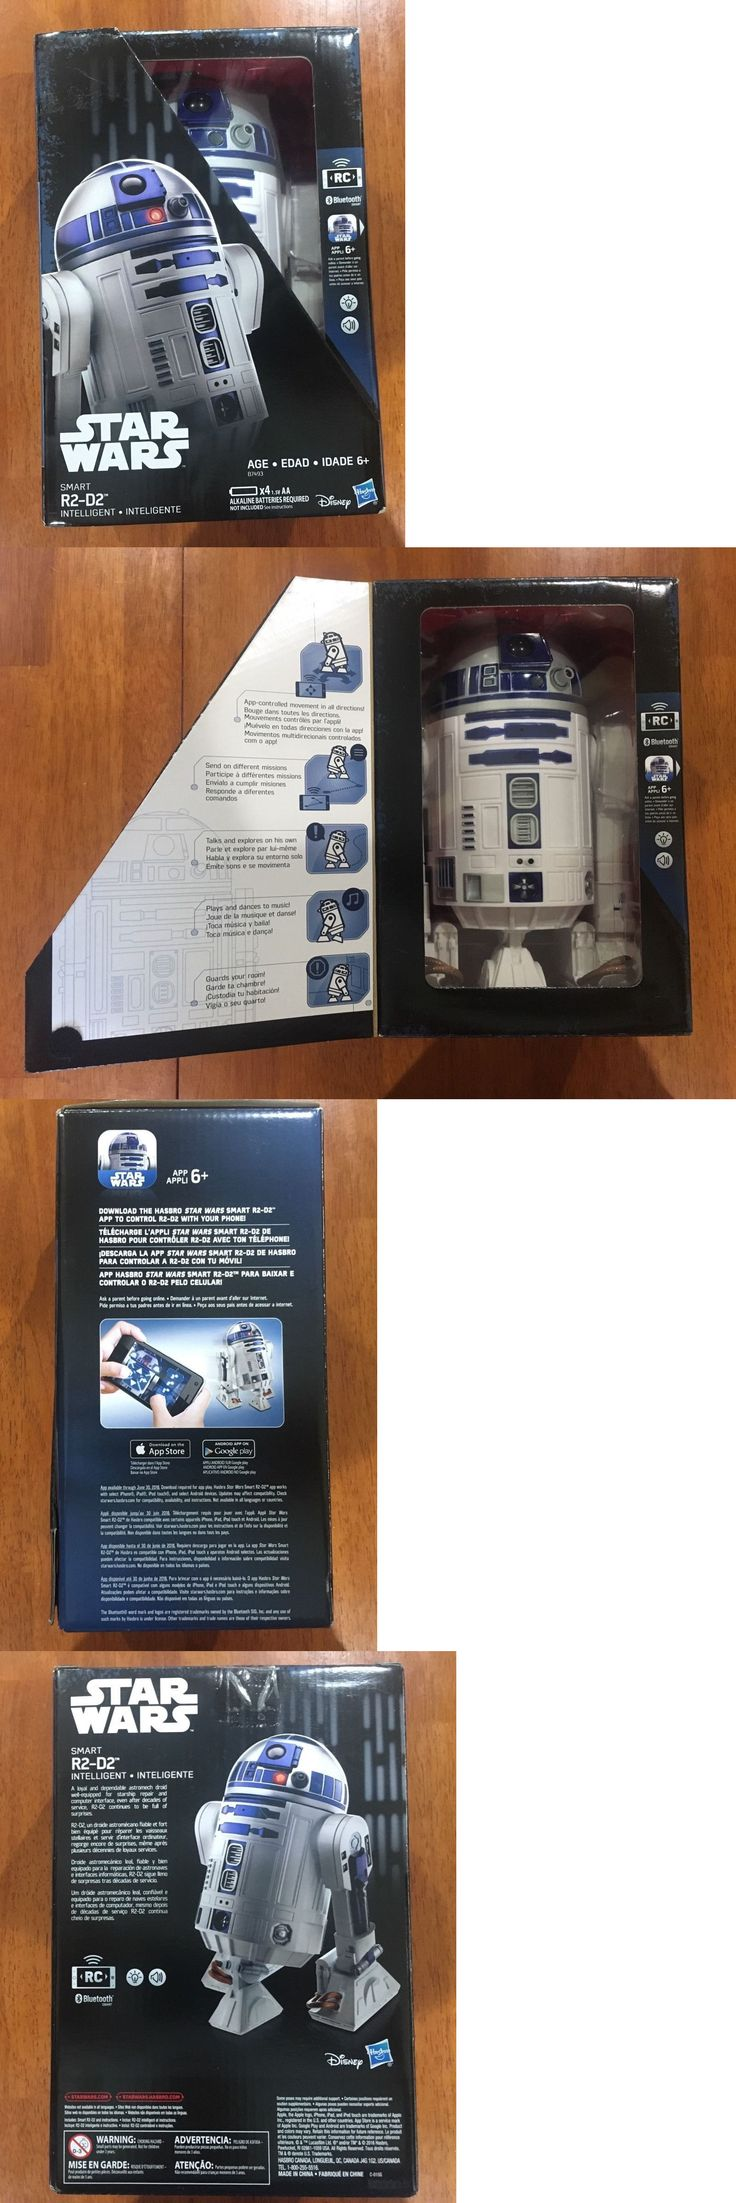 1970-Now 19198: Star Wars Smart R2-D2 - Disney - Hasbro *Rc *Bluetooth - New In Box - Sealed -> BUY IT NOW ONLY: $45 on eBay!